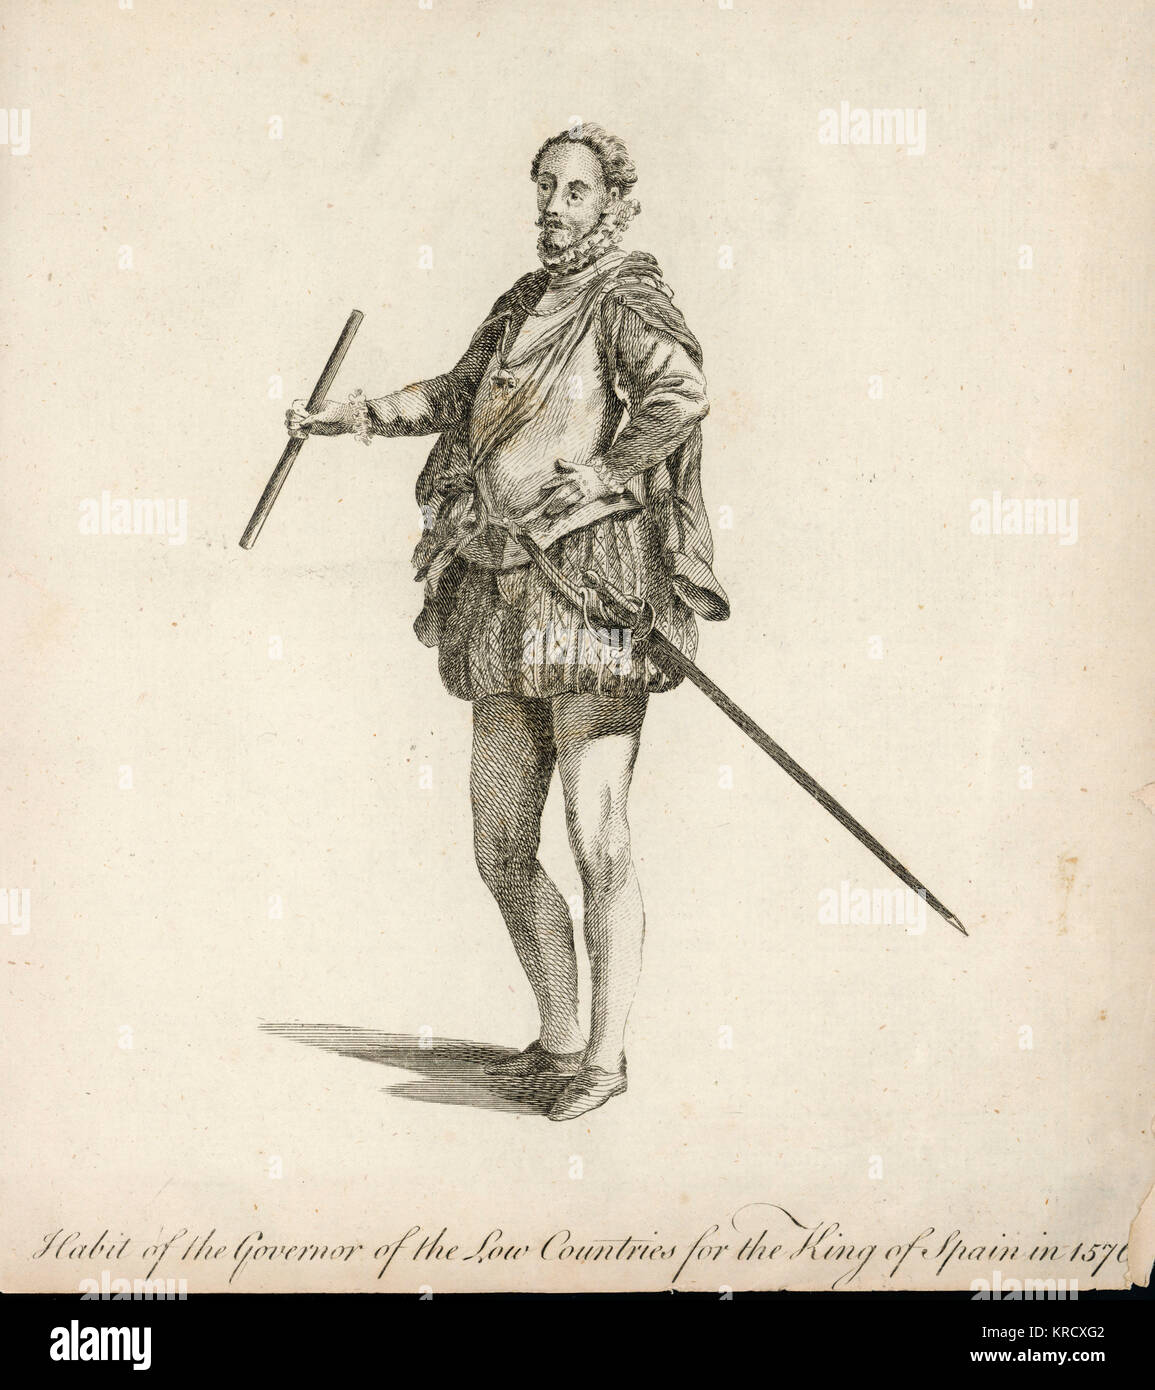 Habit of the Govenor of the  Low Countries for the King of  Spain, Philip II        Date: 1576 - Stock Image